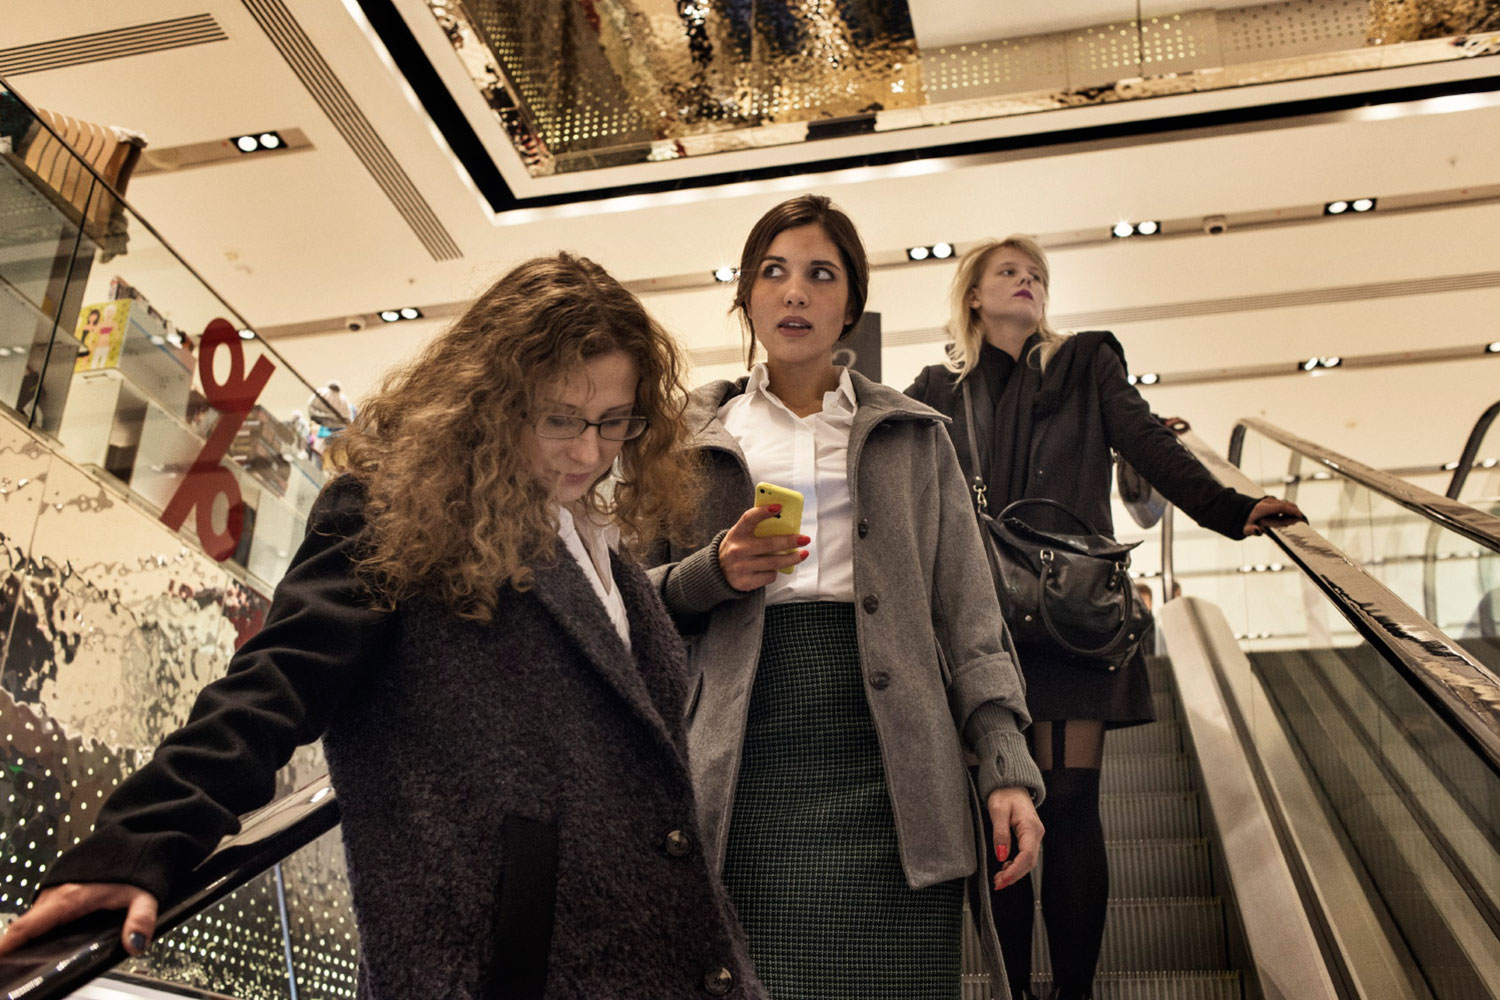 Maria Alyokhina and Nadezhda Tolokonnikova go shopping in Moscow four days after their release from a Russian prison.